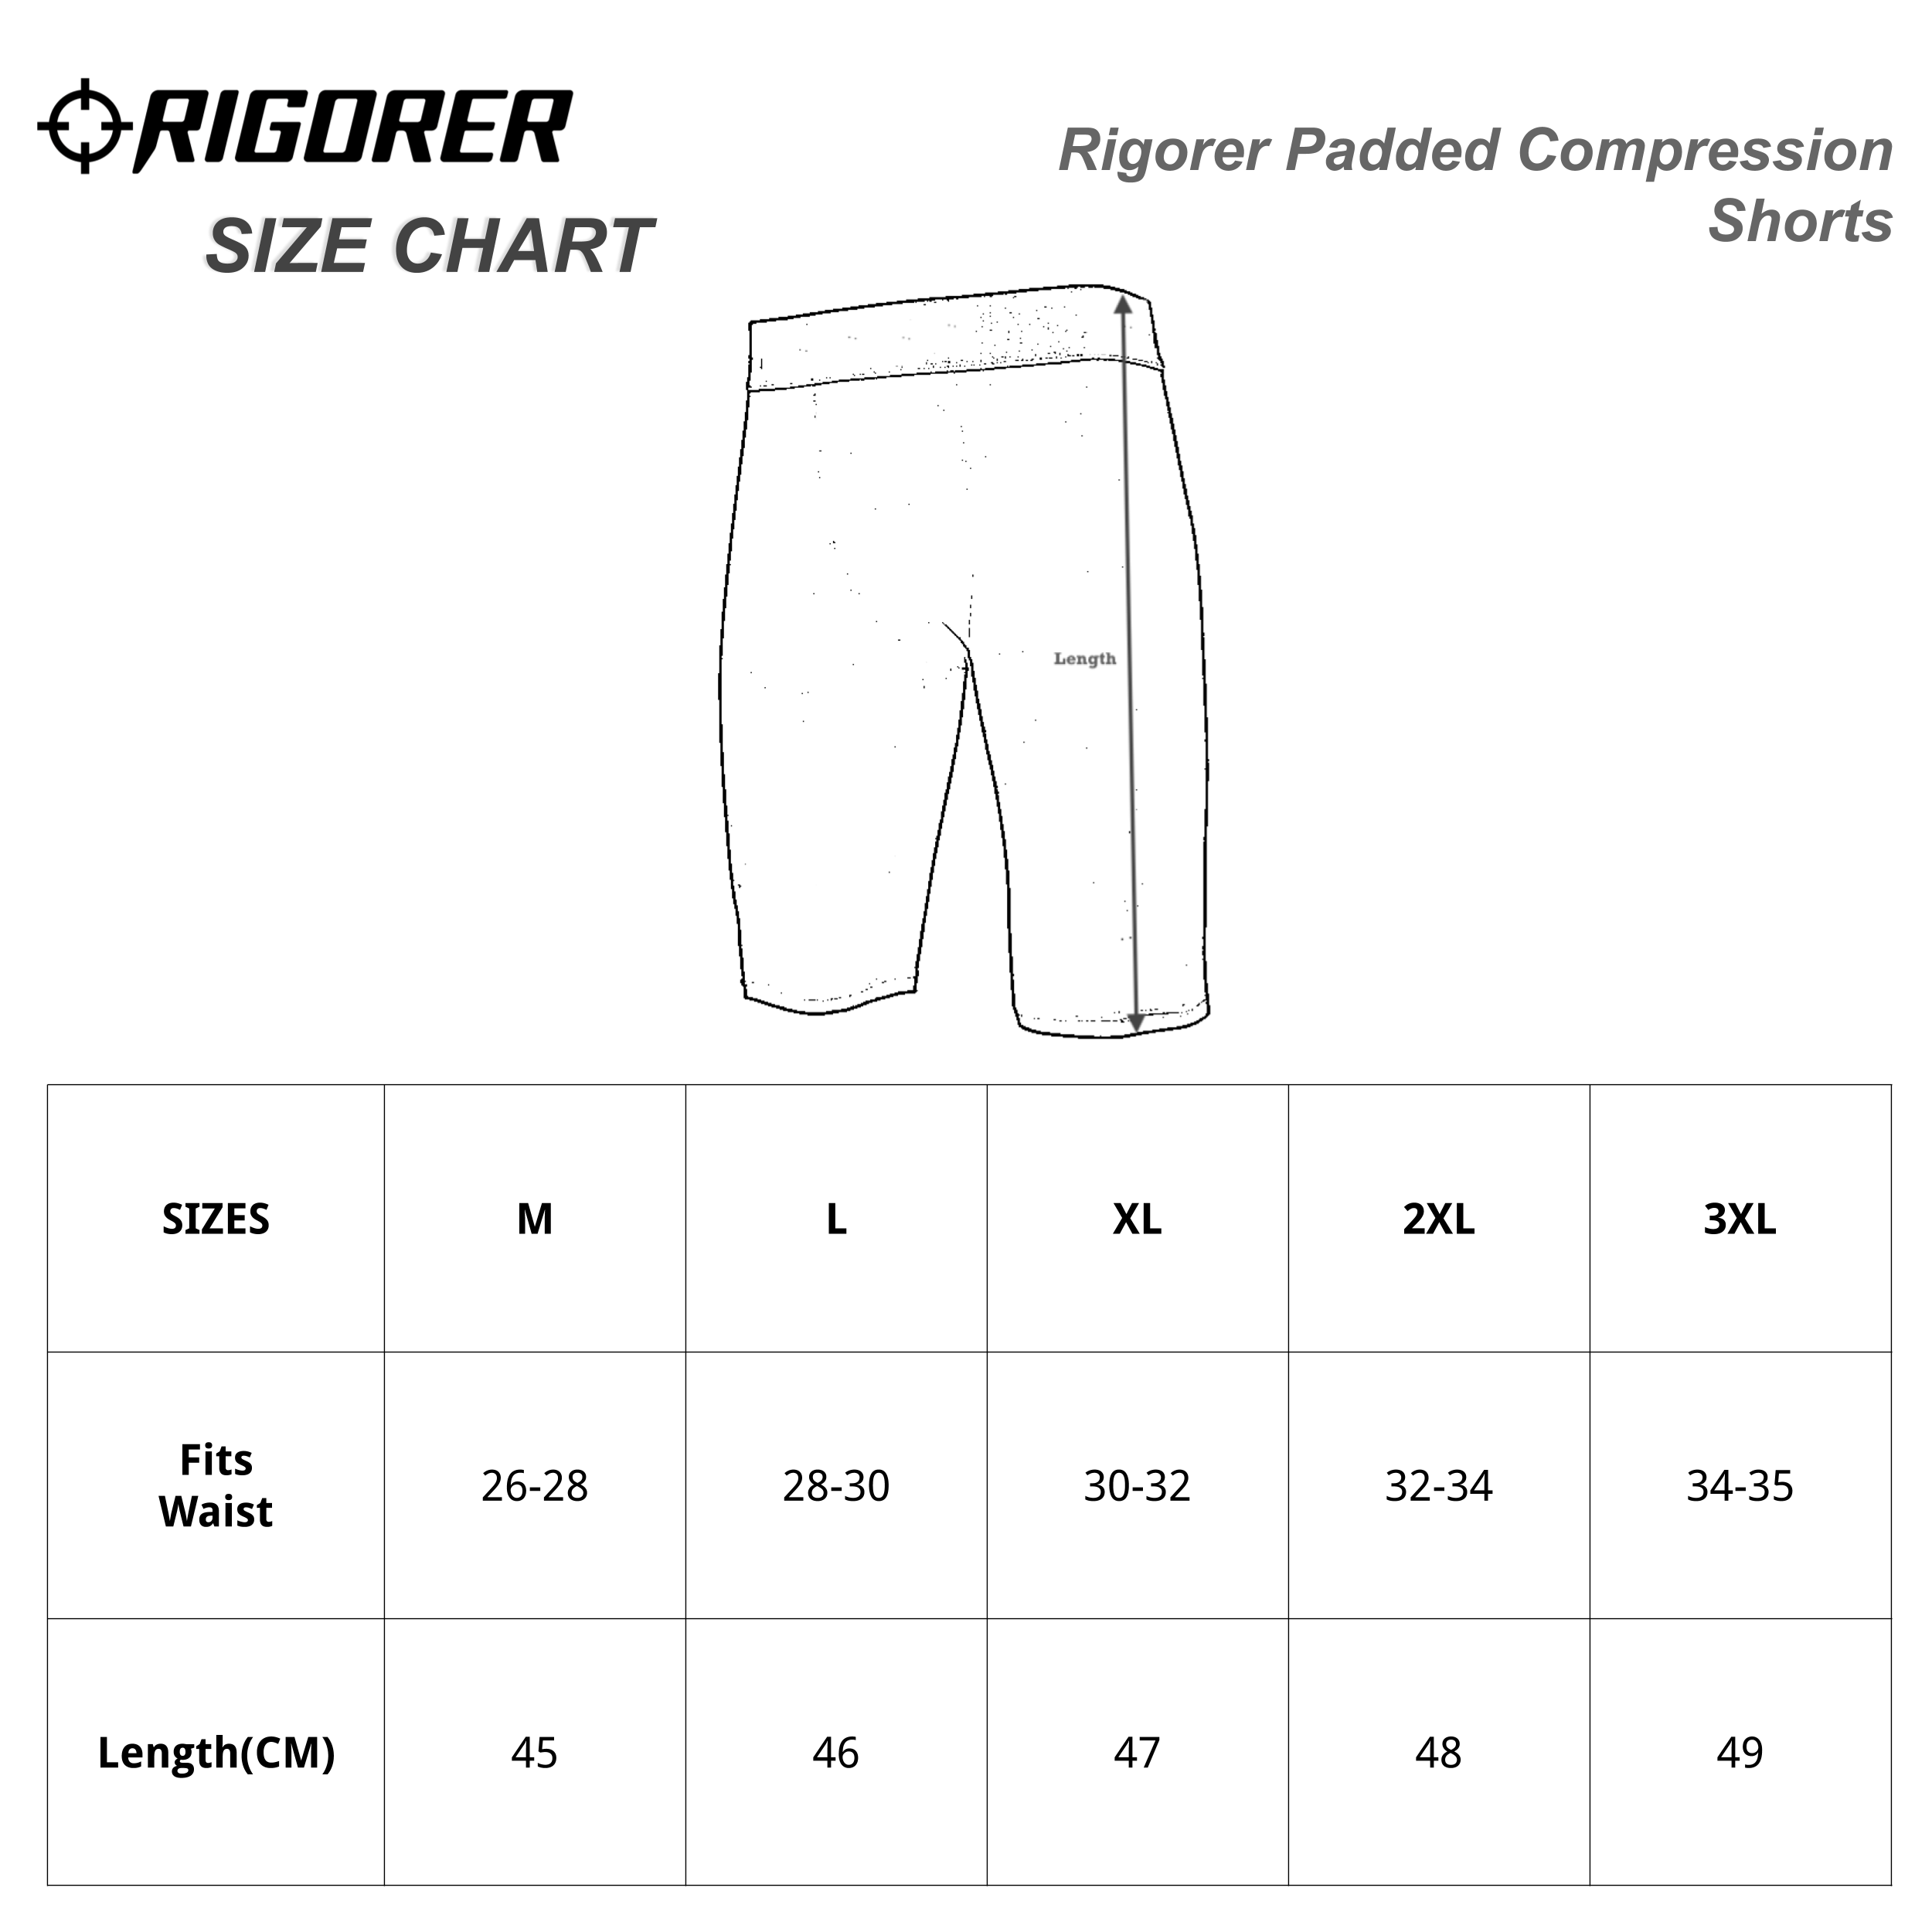 Rigorer Padded Compression Shorts Sizing Chart